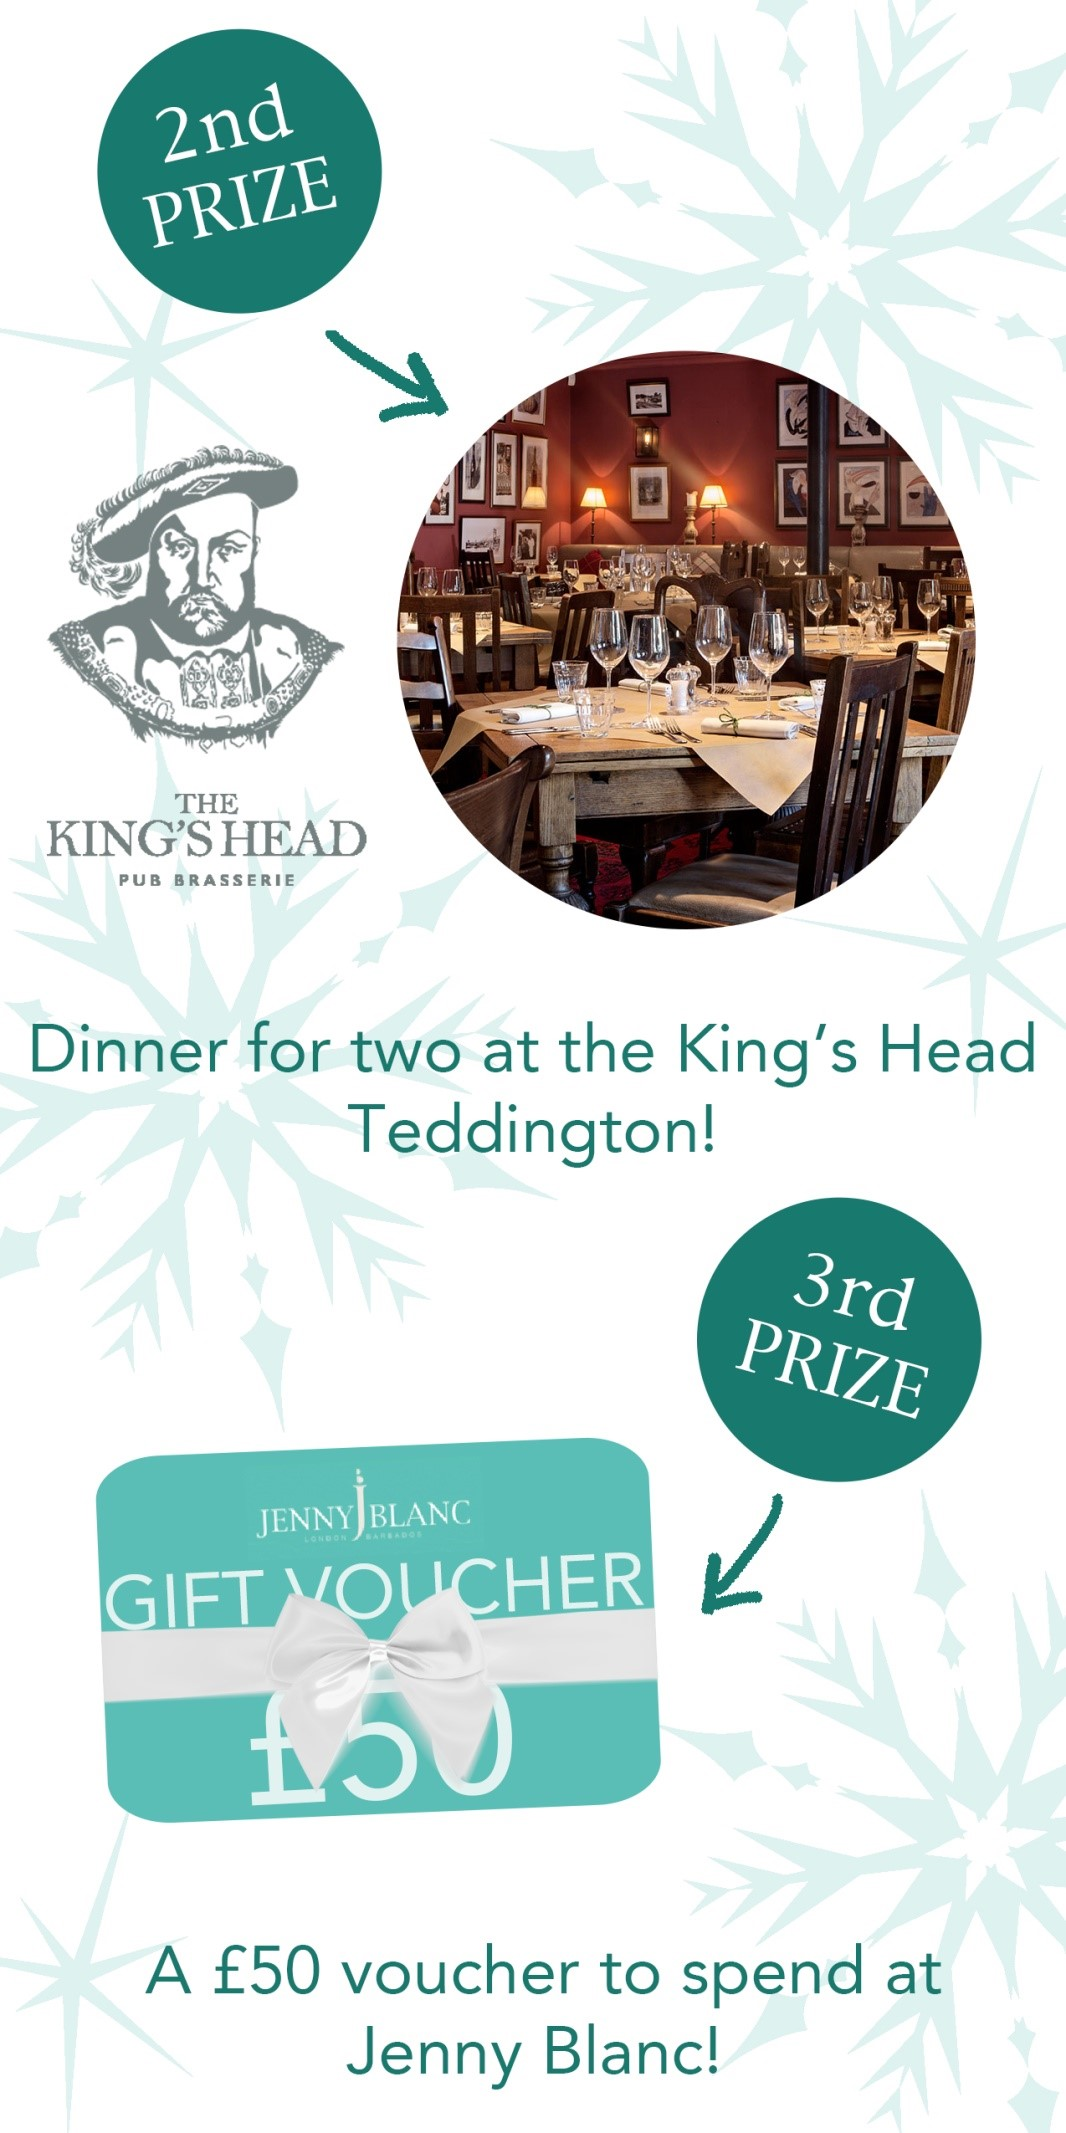 Jenny Blanc Blog - Second & Third Prizes - Teddington King's Head & Gift Voucher 2018